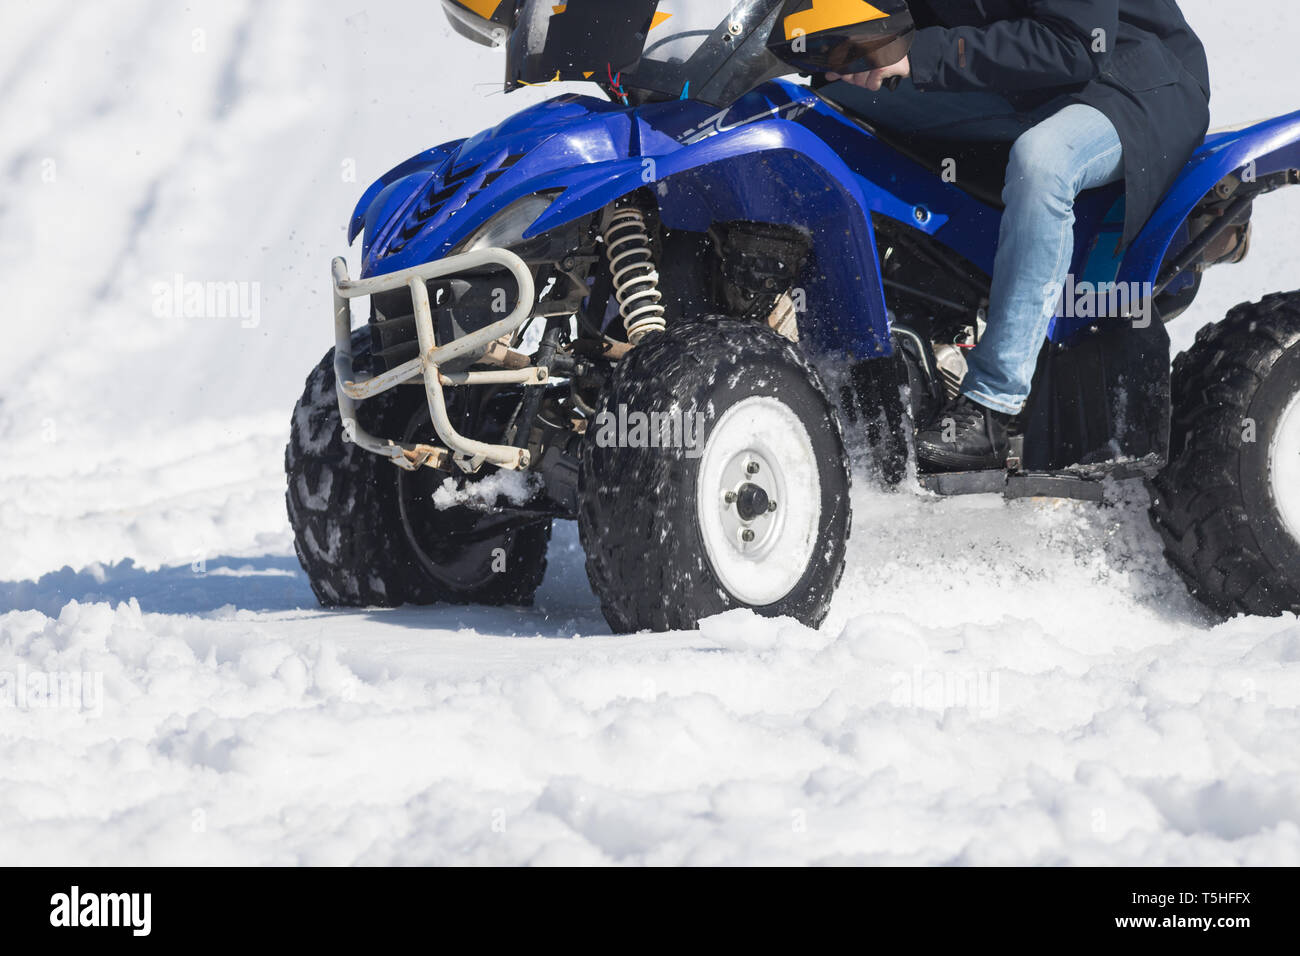 A winter forest. A young woman riding a blue snowmobile - Stock Image